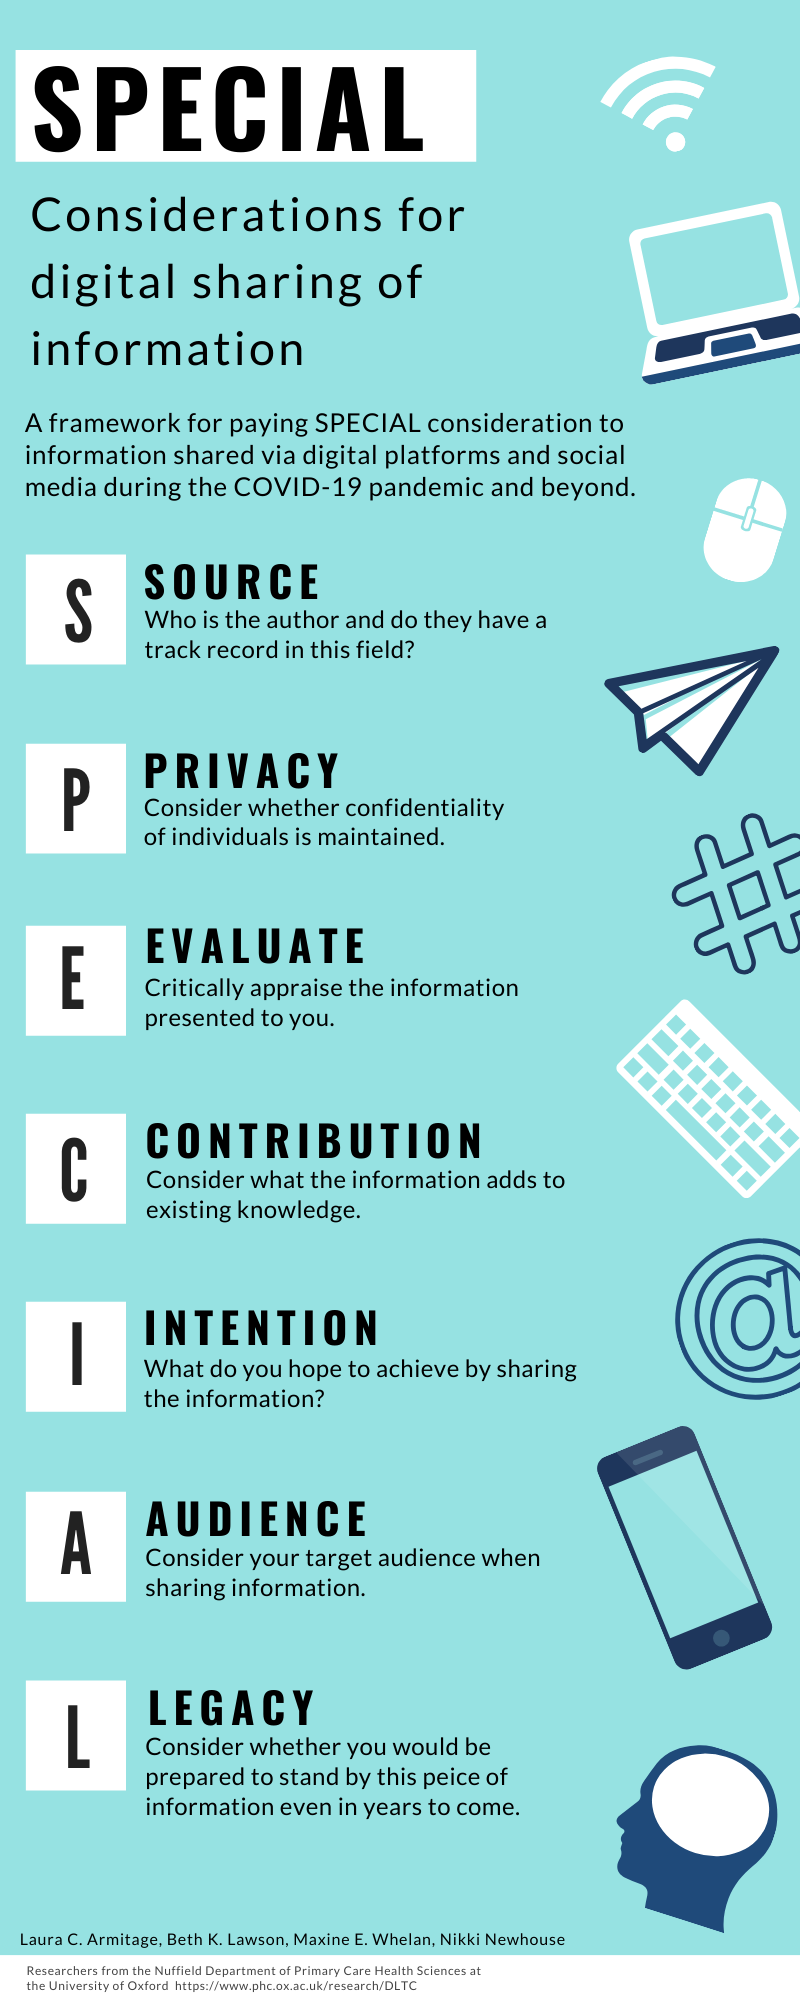 DLTC group researchers have published the paper: Paying SPECIAL consideration to the digital sharing of information during the COVID-19 pandemic and beyond. Click the 'See more' button below to see the paper and infographic in full